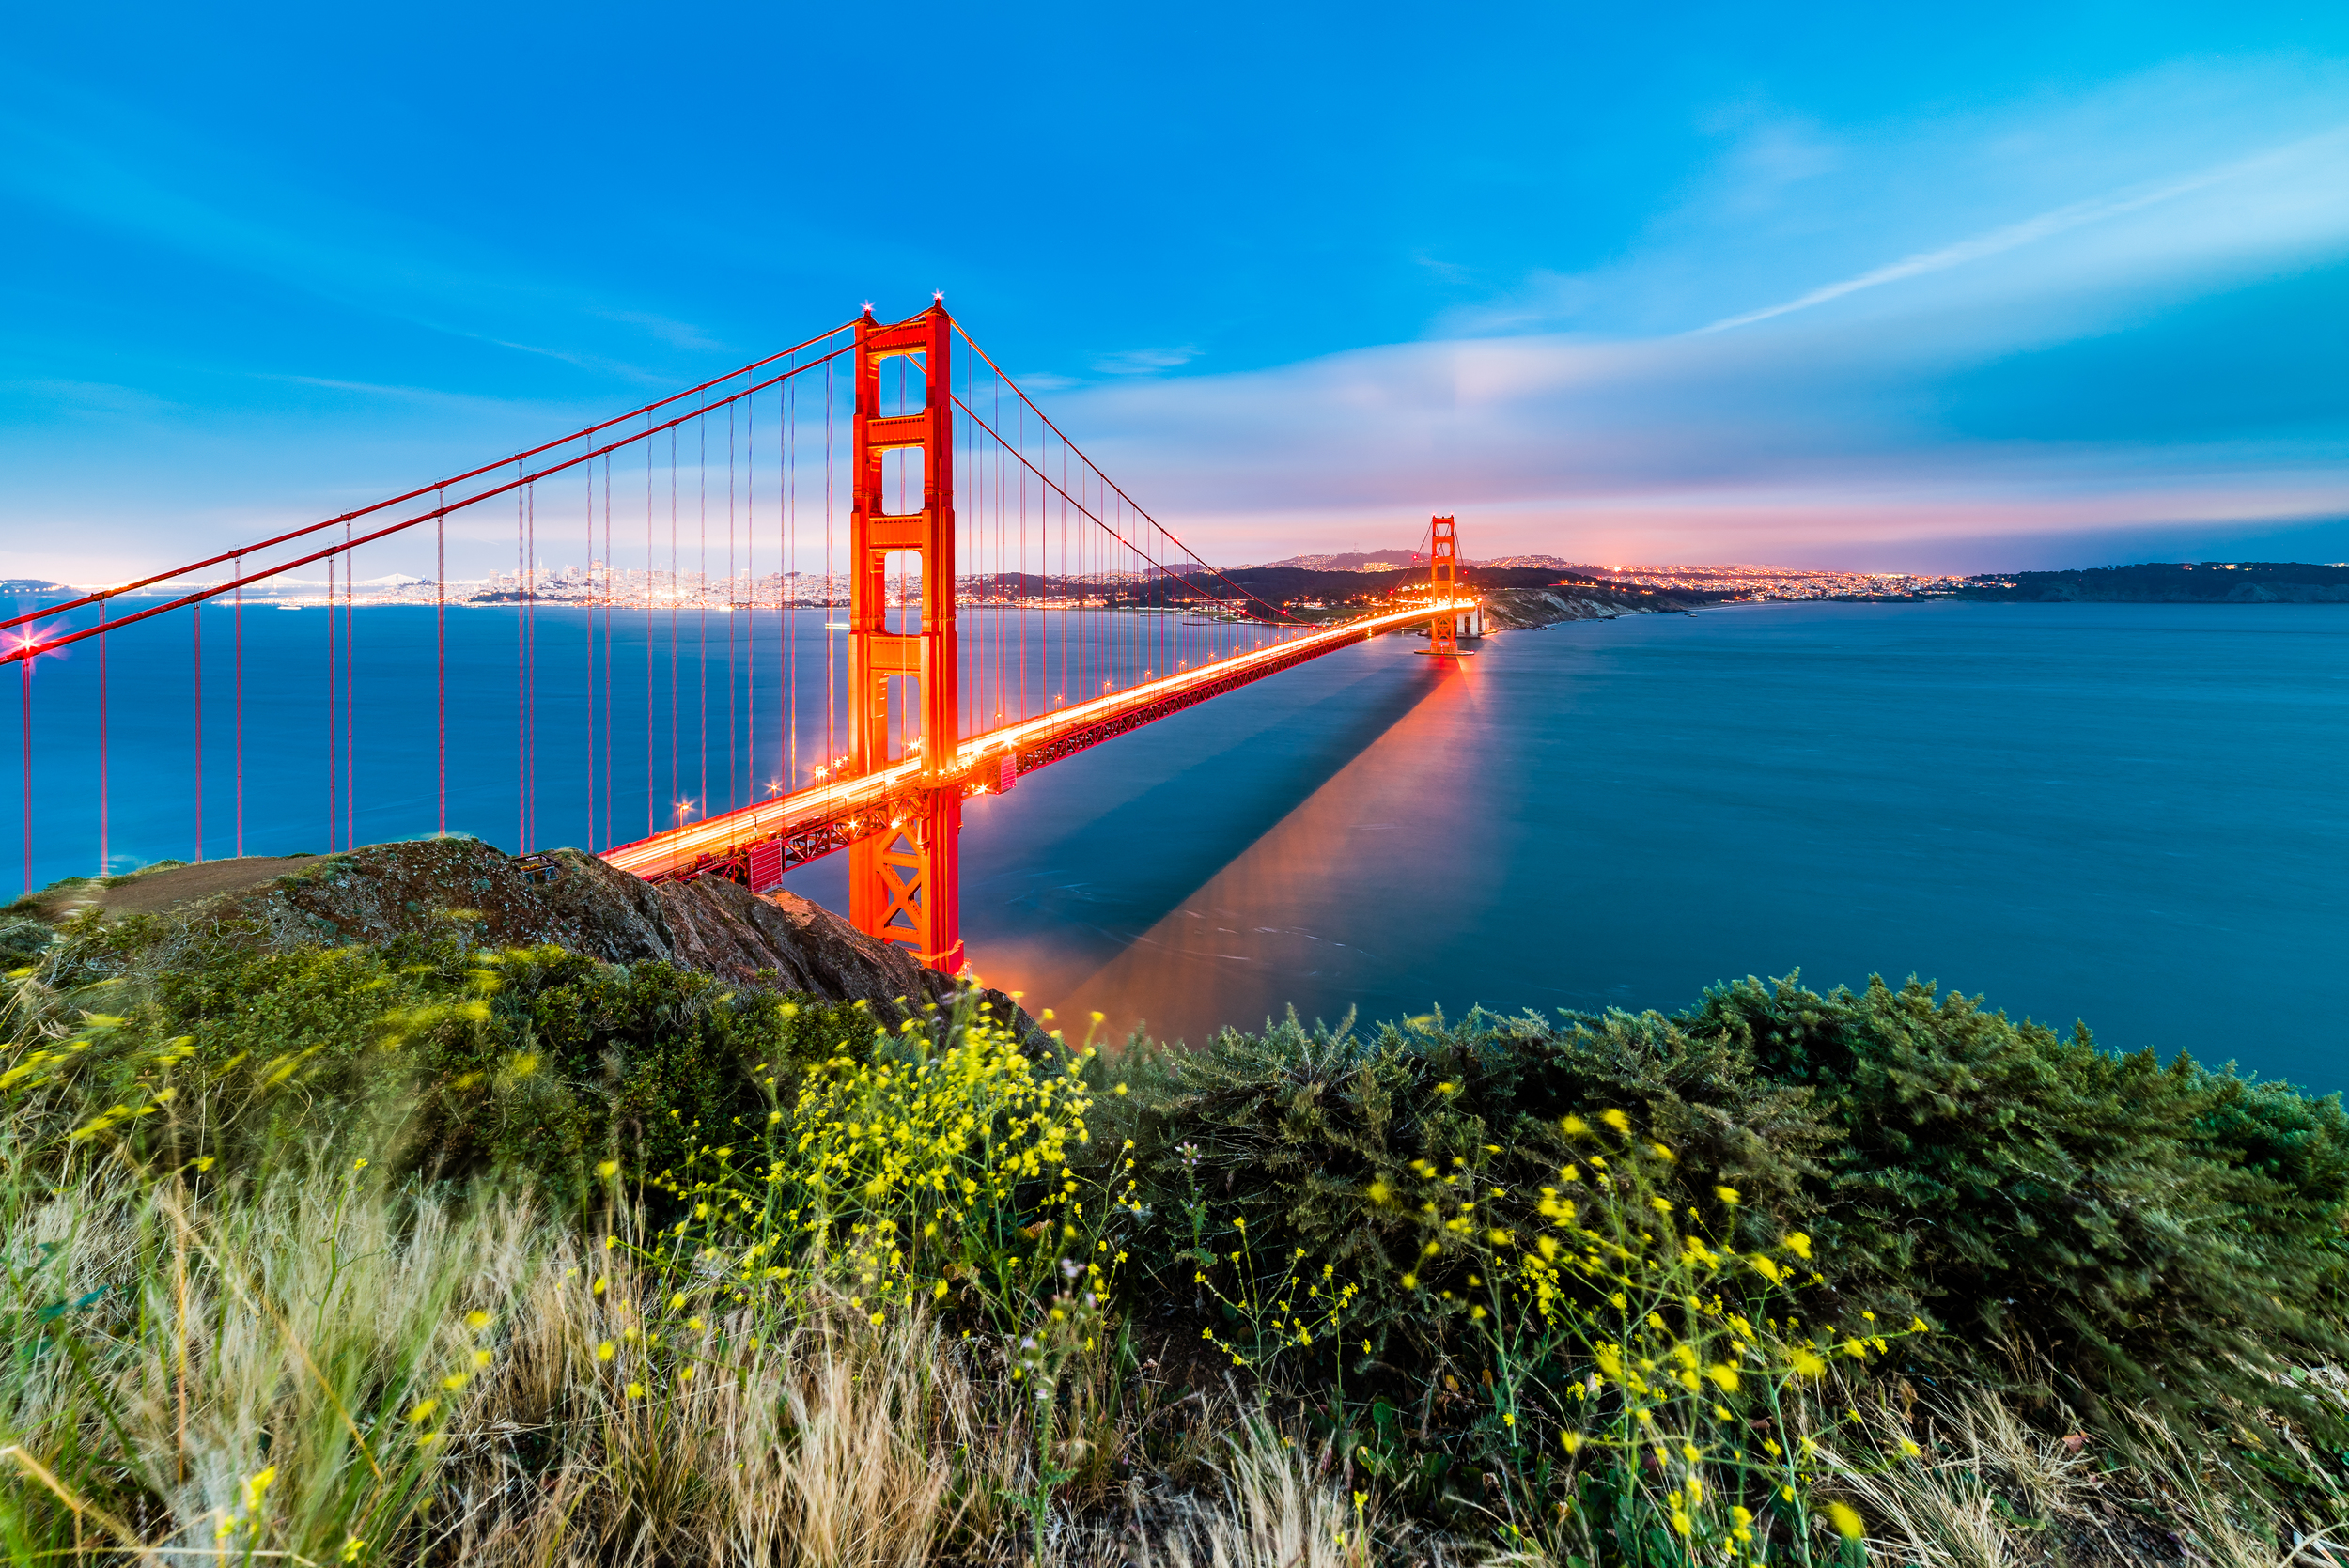 San Fransisco Bridge at sunset during a beautiful transition to the blue hour.